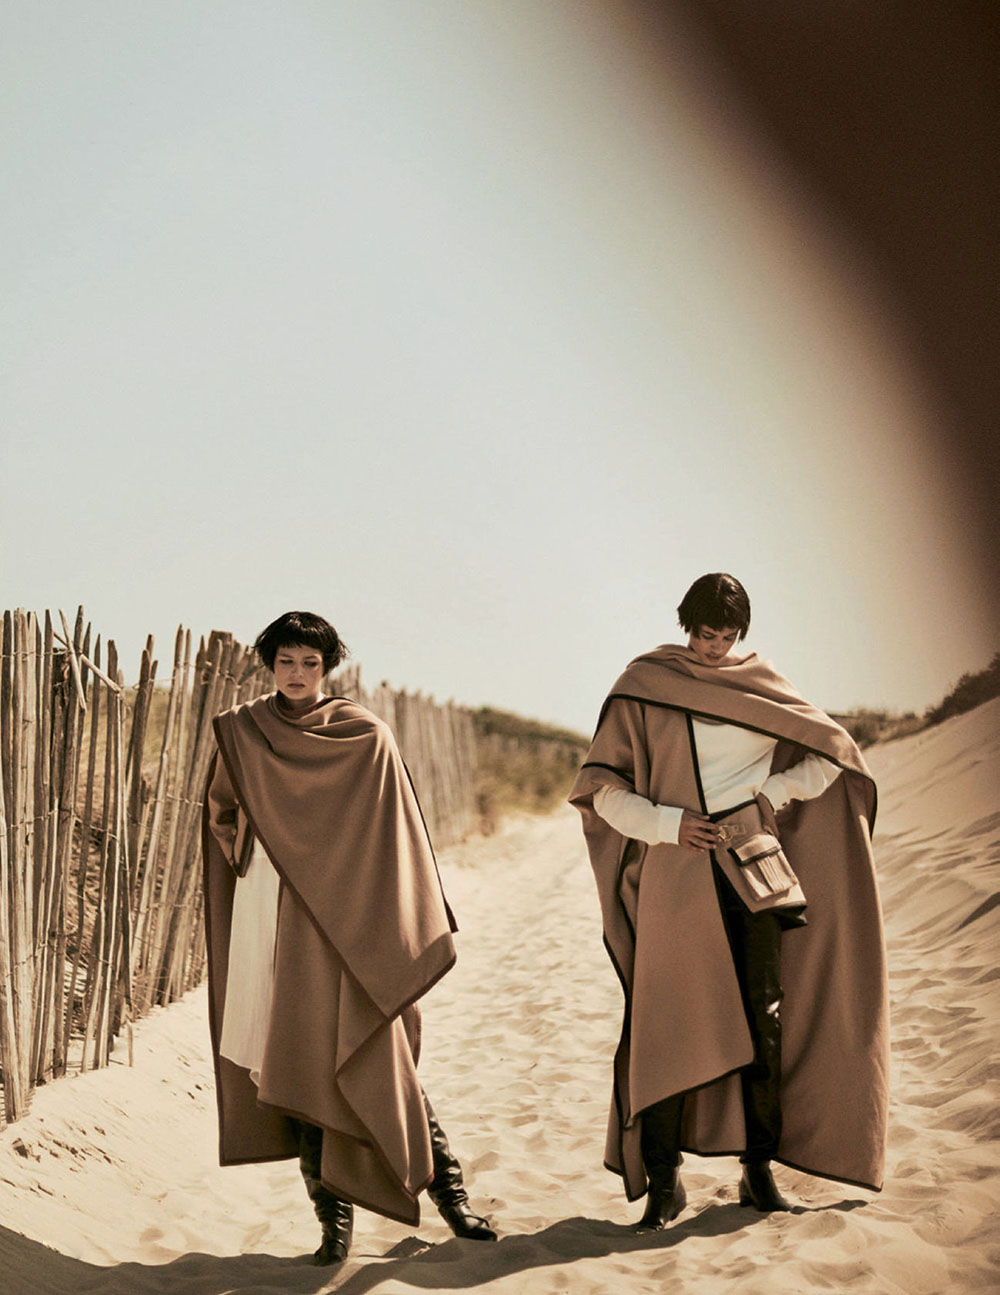 Malika El Maslouhi and Deirdre Firinne by Boo George for Vogue Russia November 2020